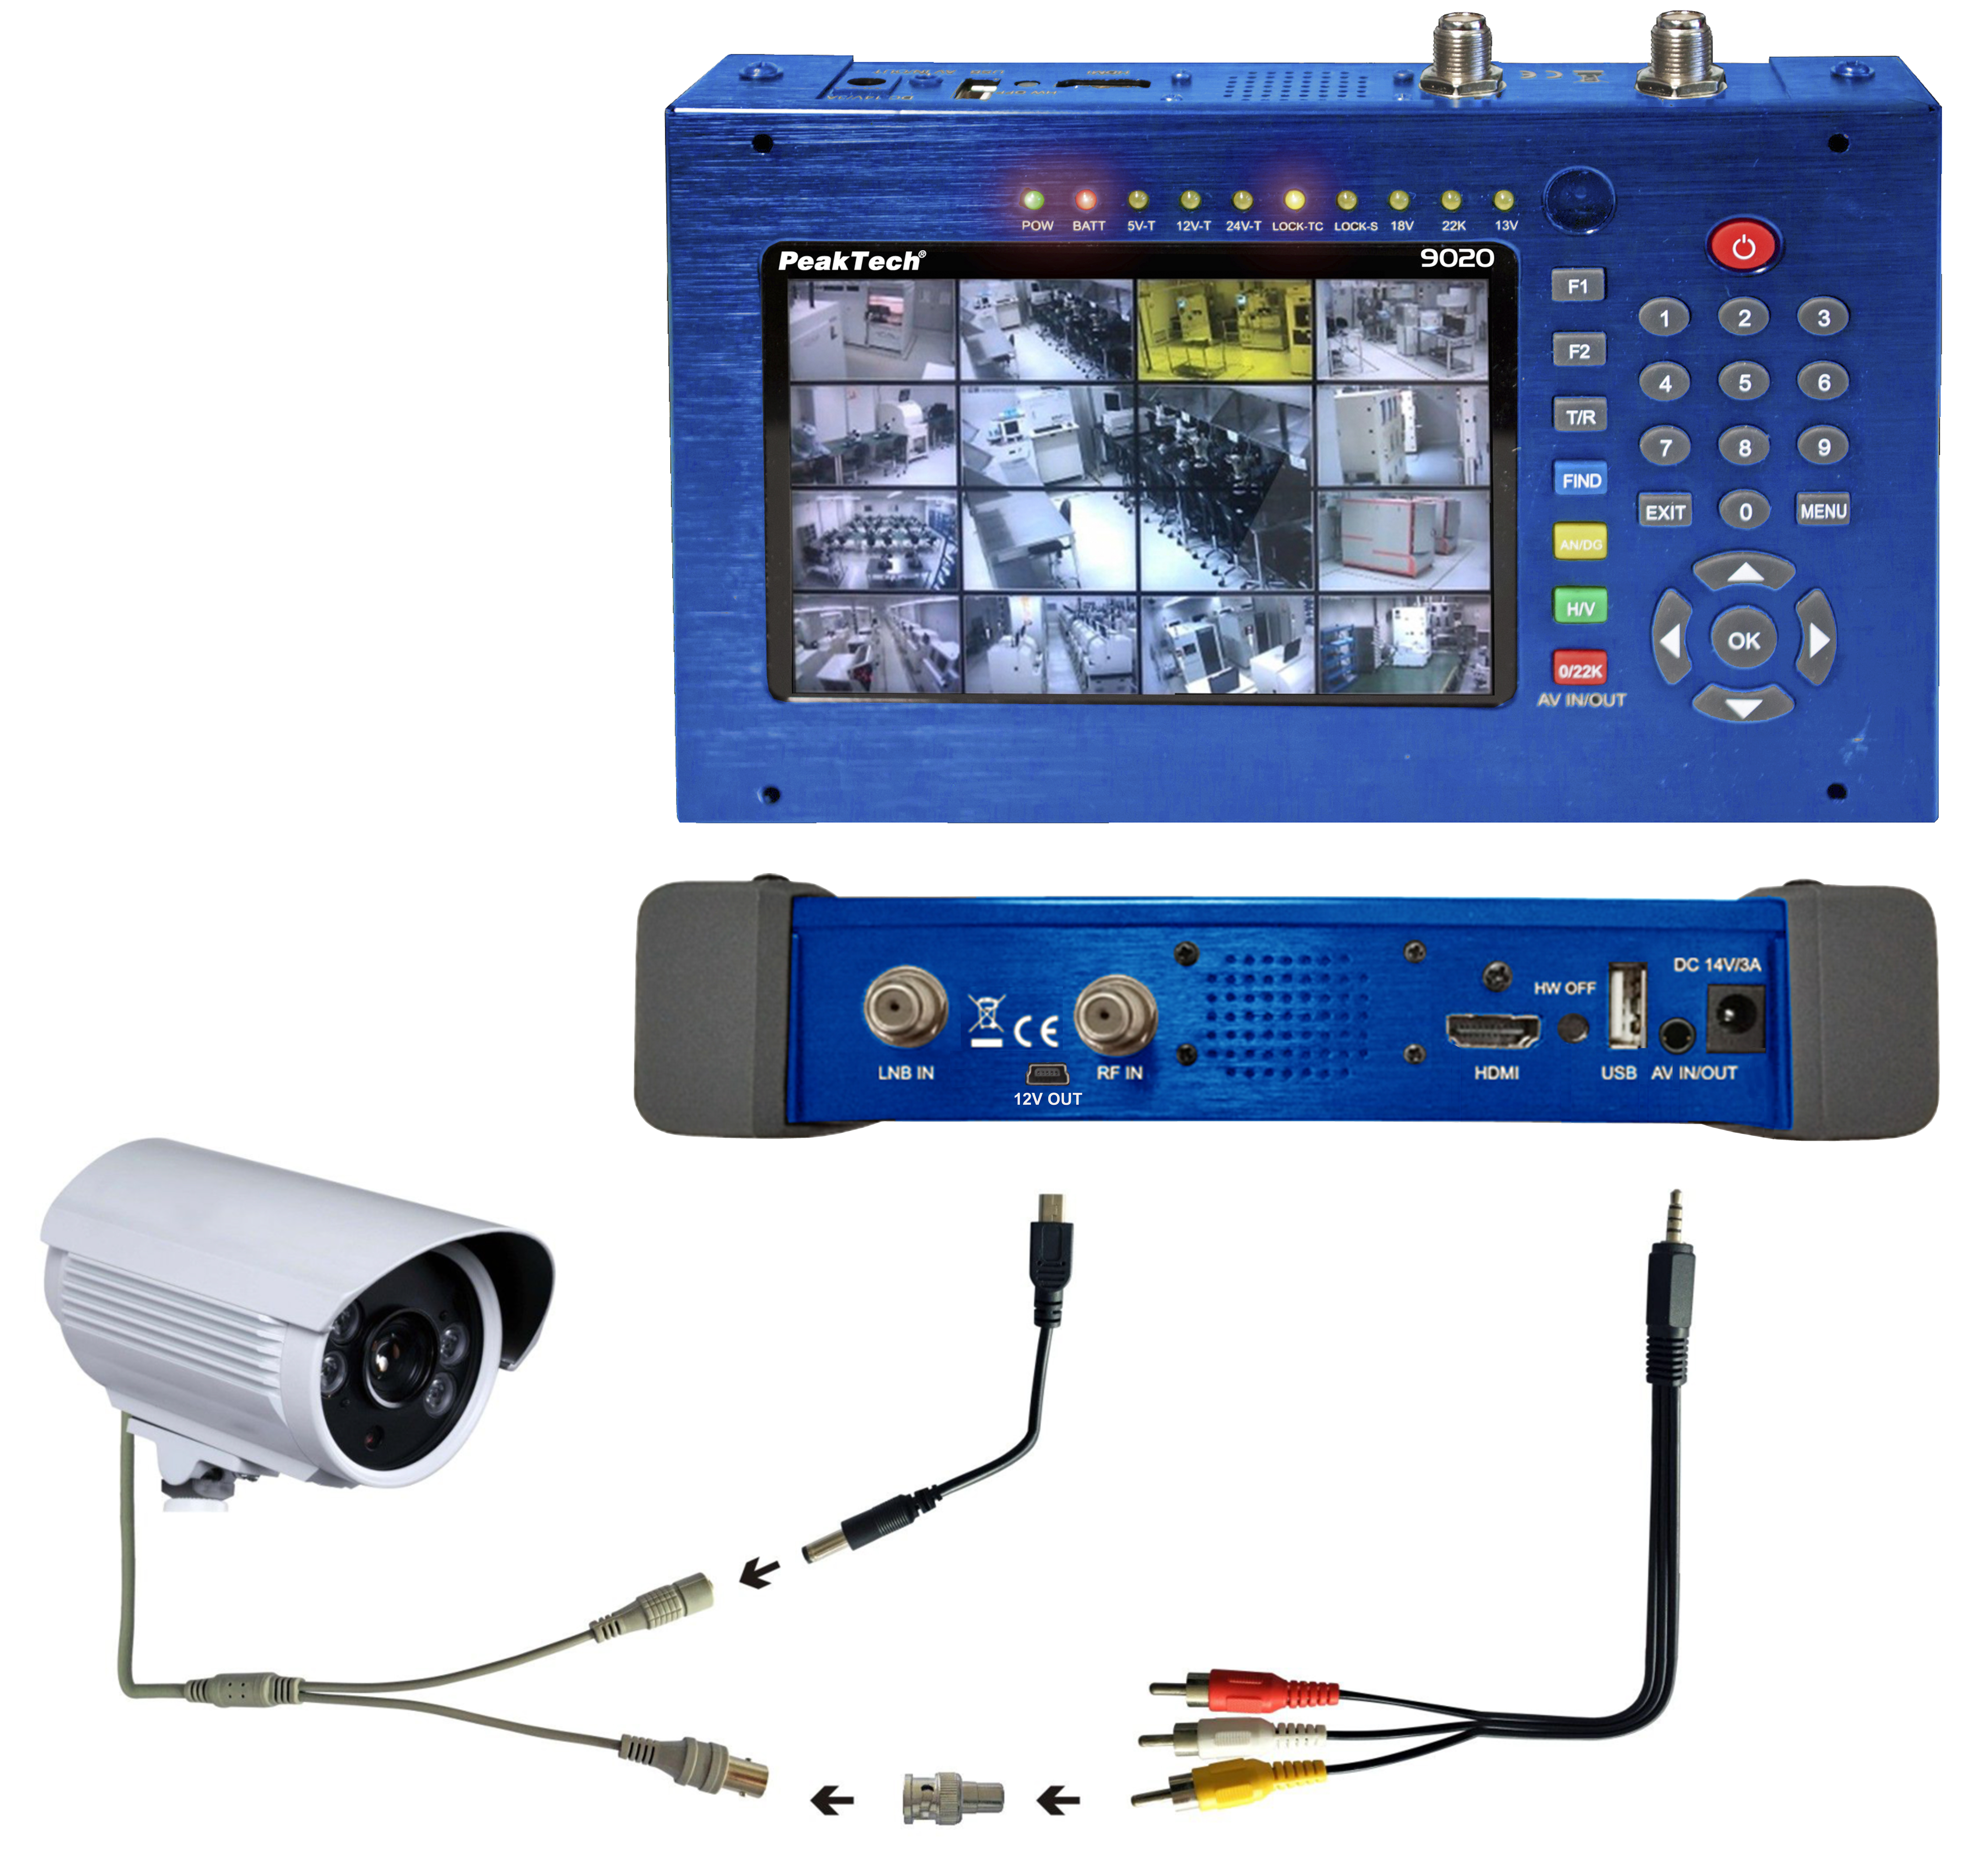 """«PeakTech® P 9020» DVB-C/S2/T2 Meter with 5""""; Display and H.264 Codec"""